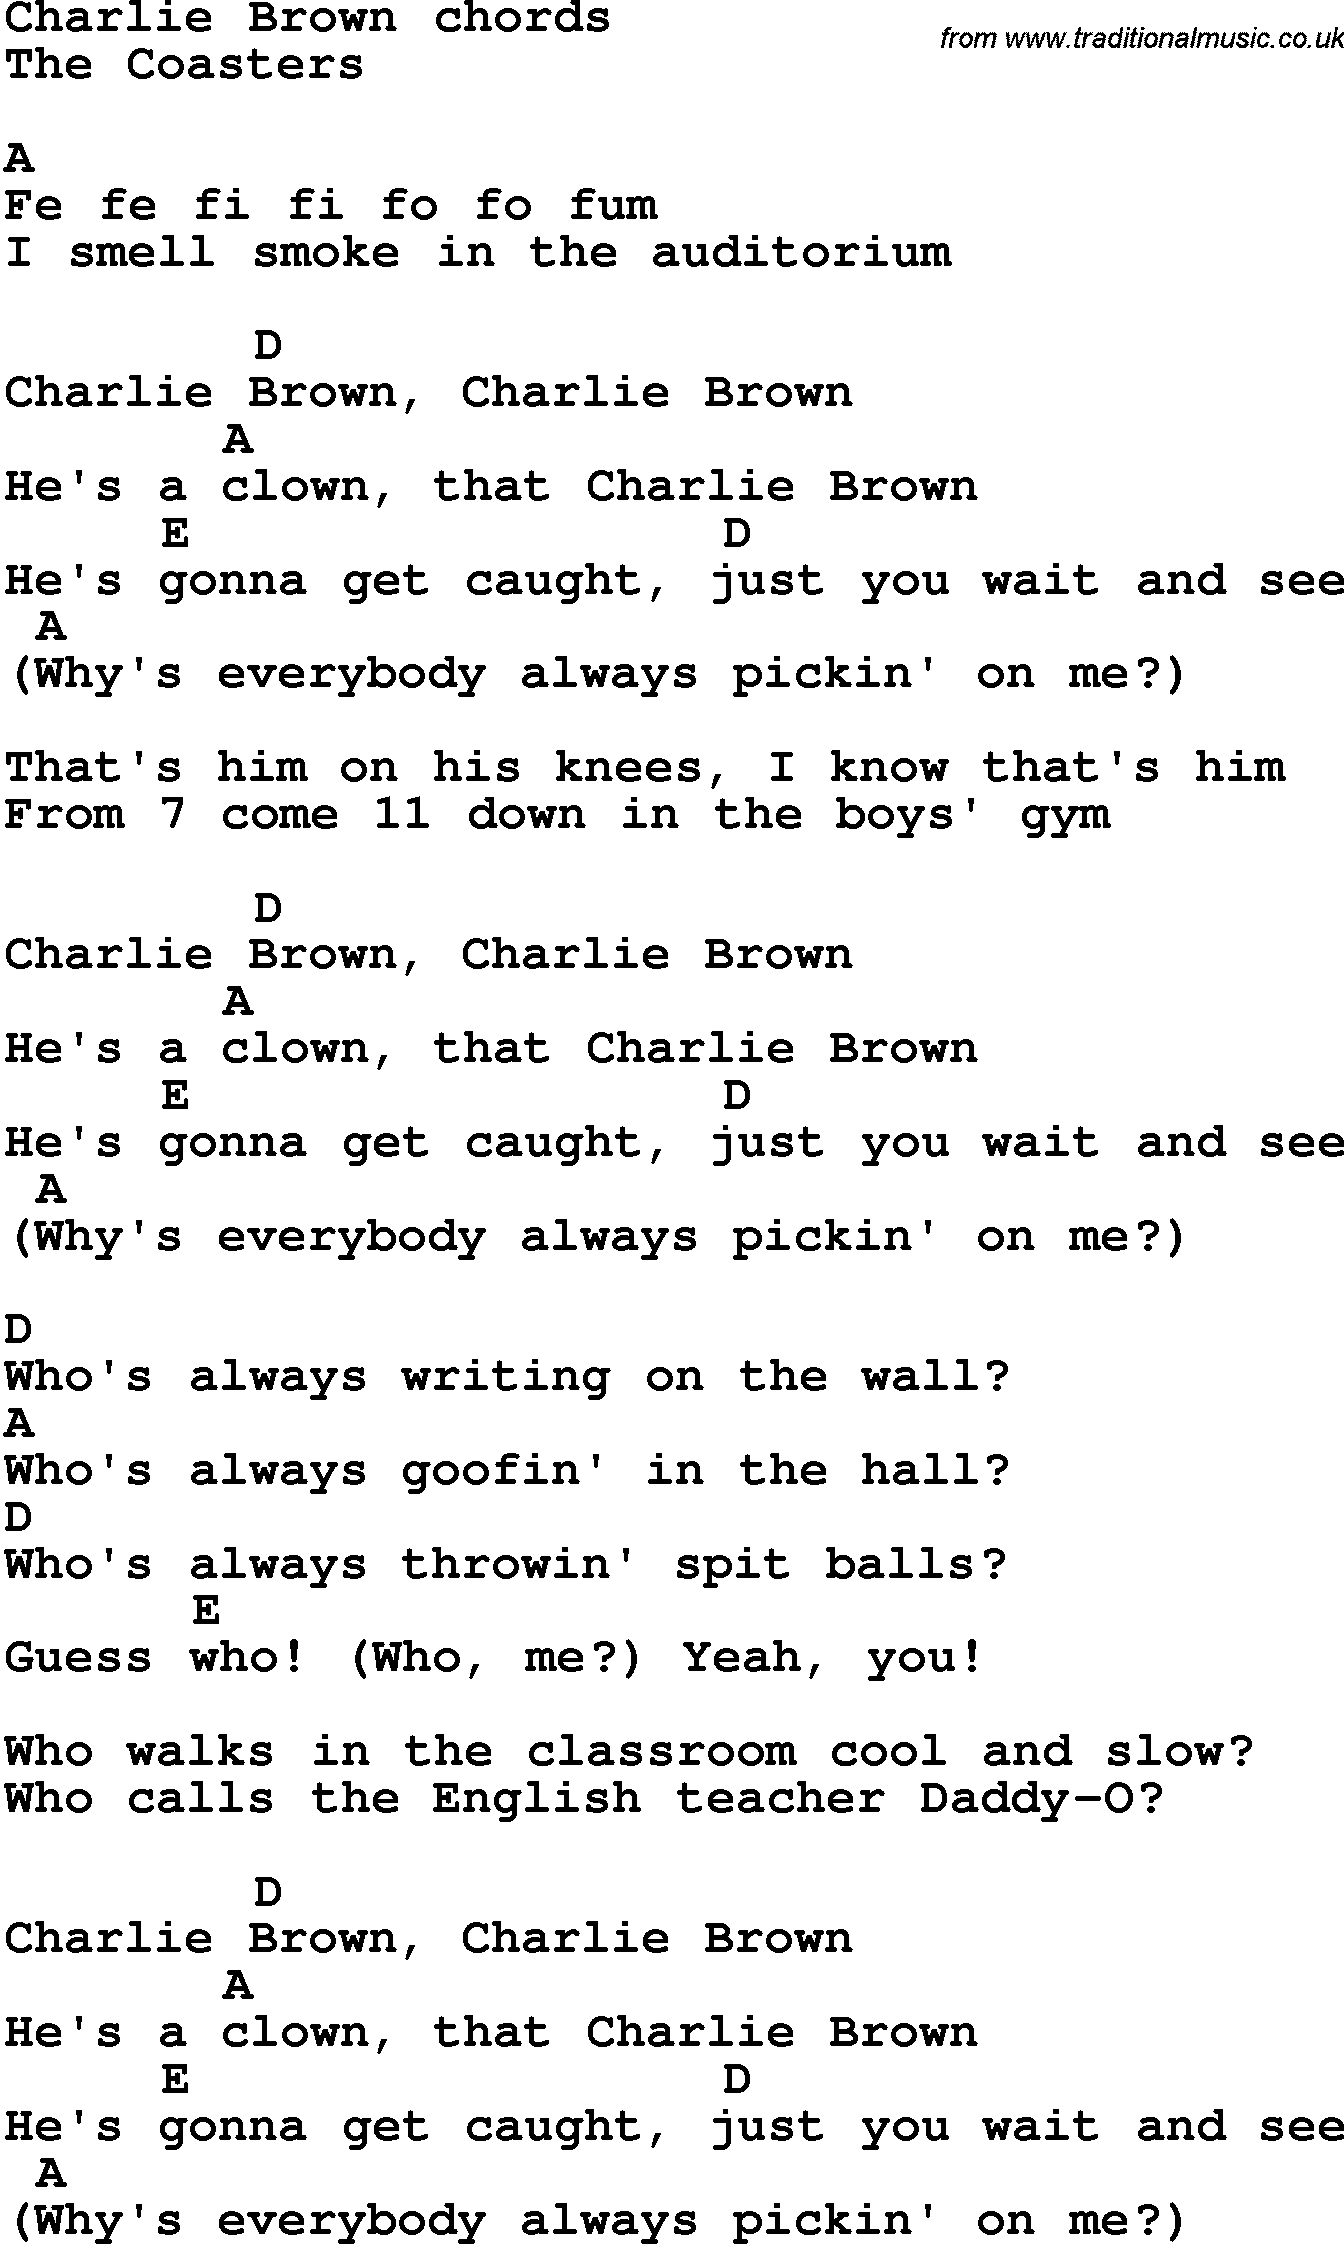 Song Lyrics With Guitar Chords For Charlie Brown